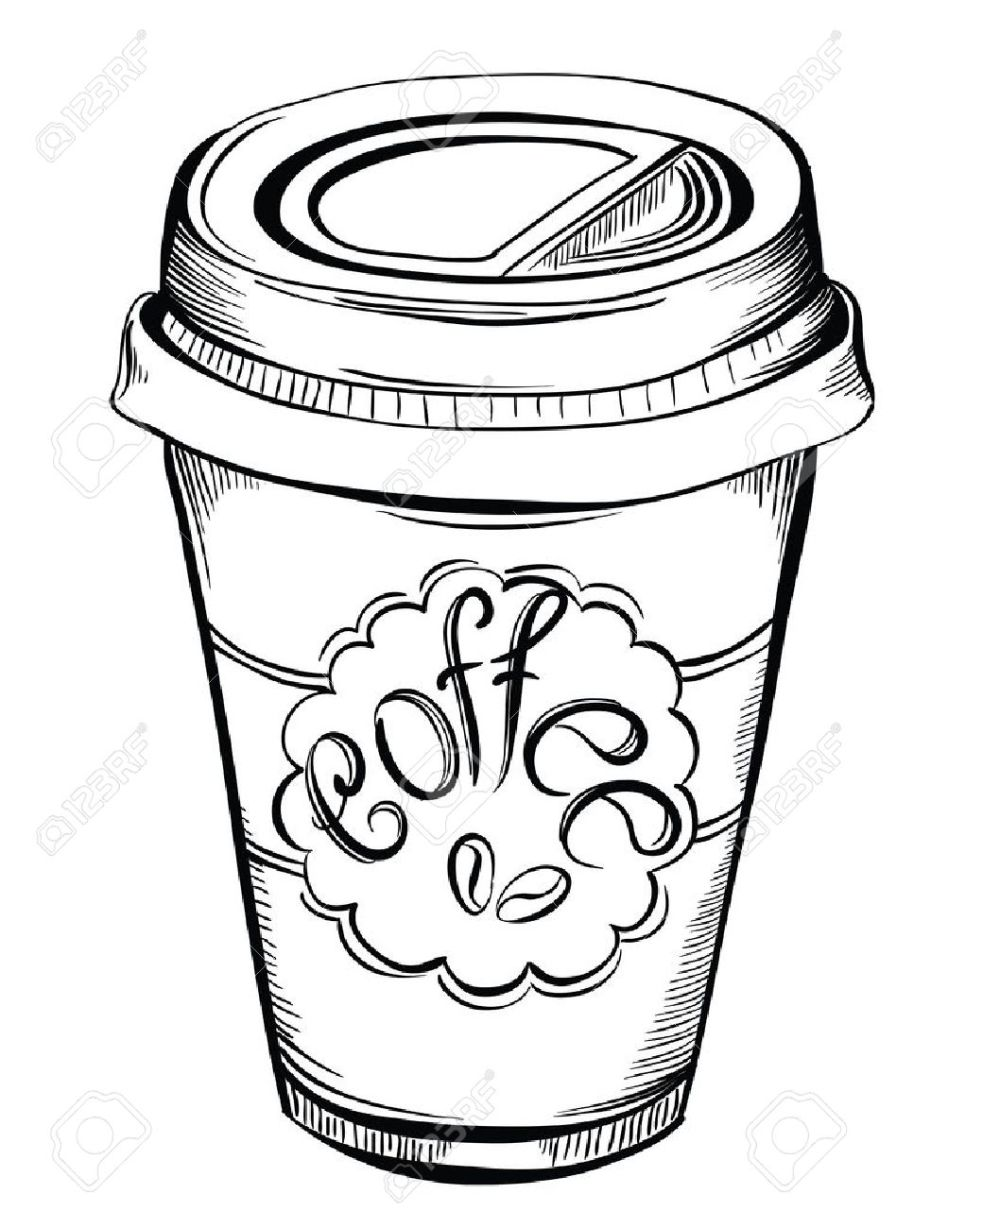 medium resolution of 1058x1300 hot coffee disposable to go cup with lids and label with coffee